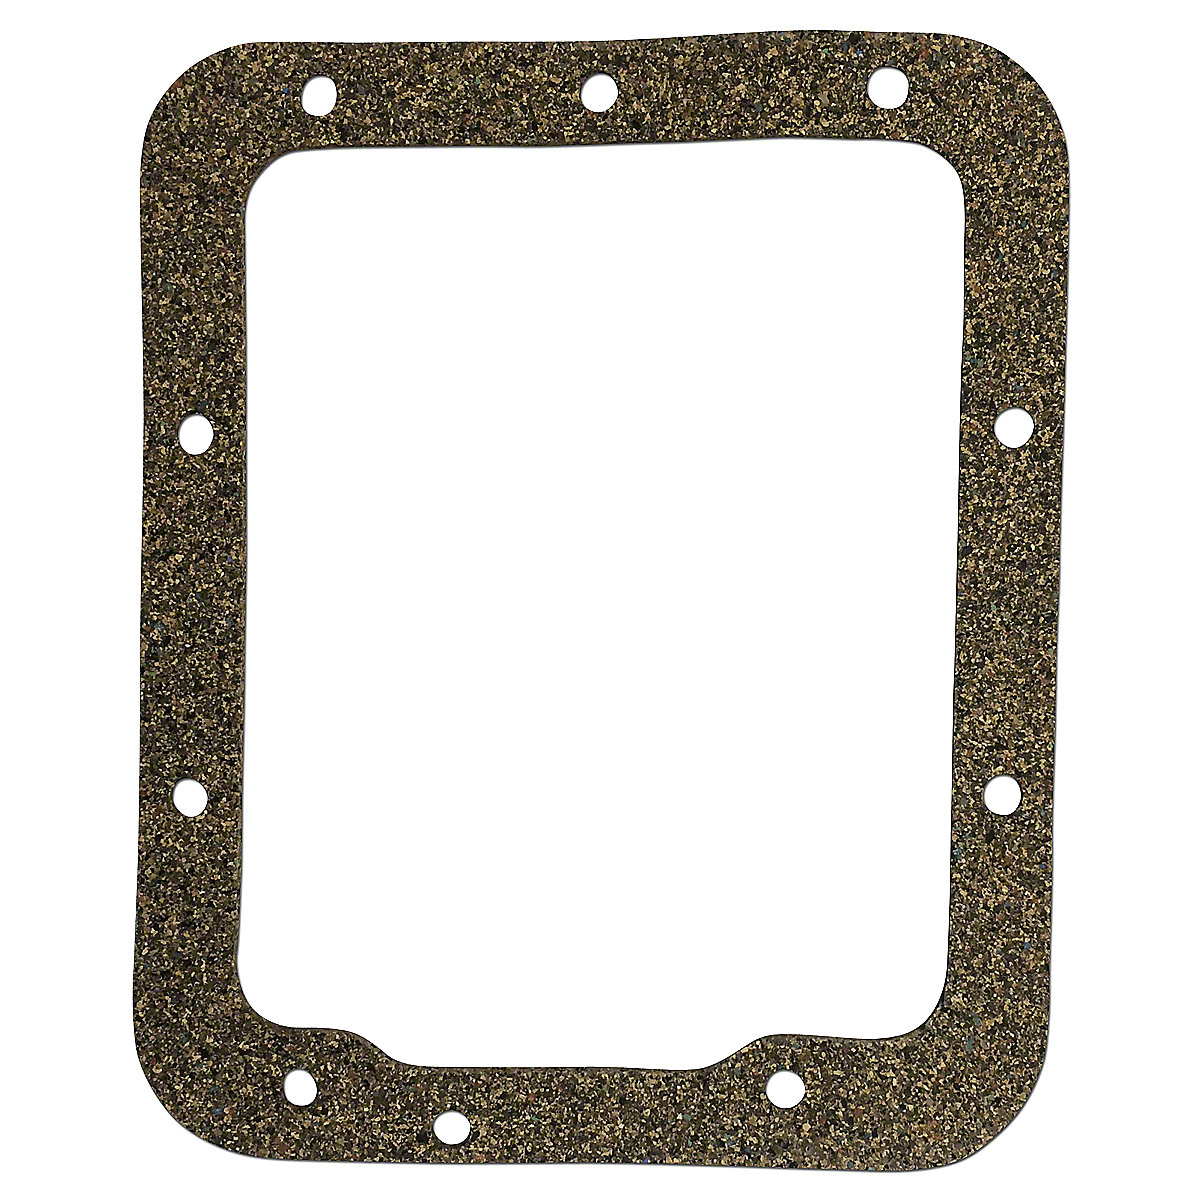 FDS2479GK Transmission Shift Cover Gasket